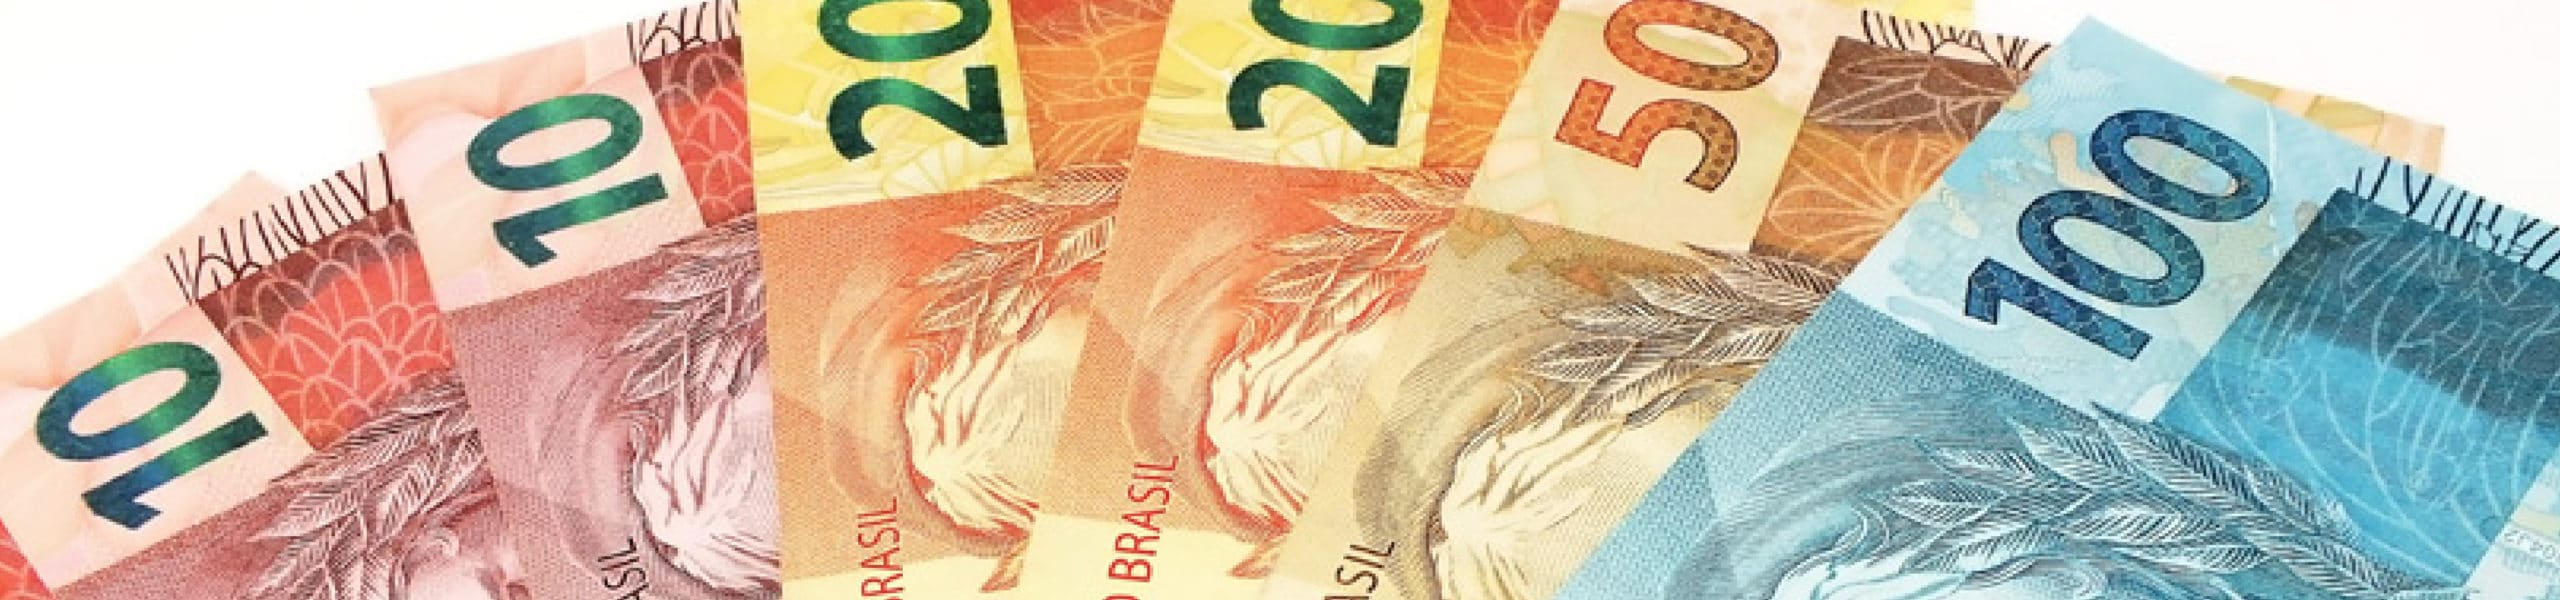 Local currency in Brazil, and where to exchange money. RipioTurismo DMC tour operator in Brazil